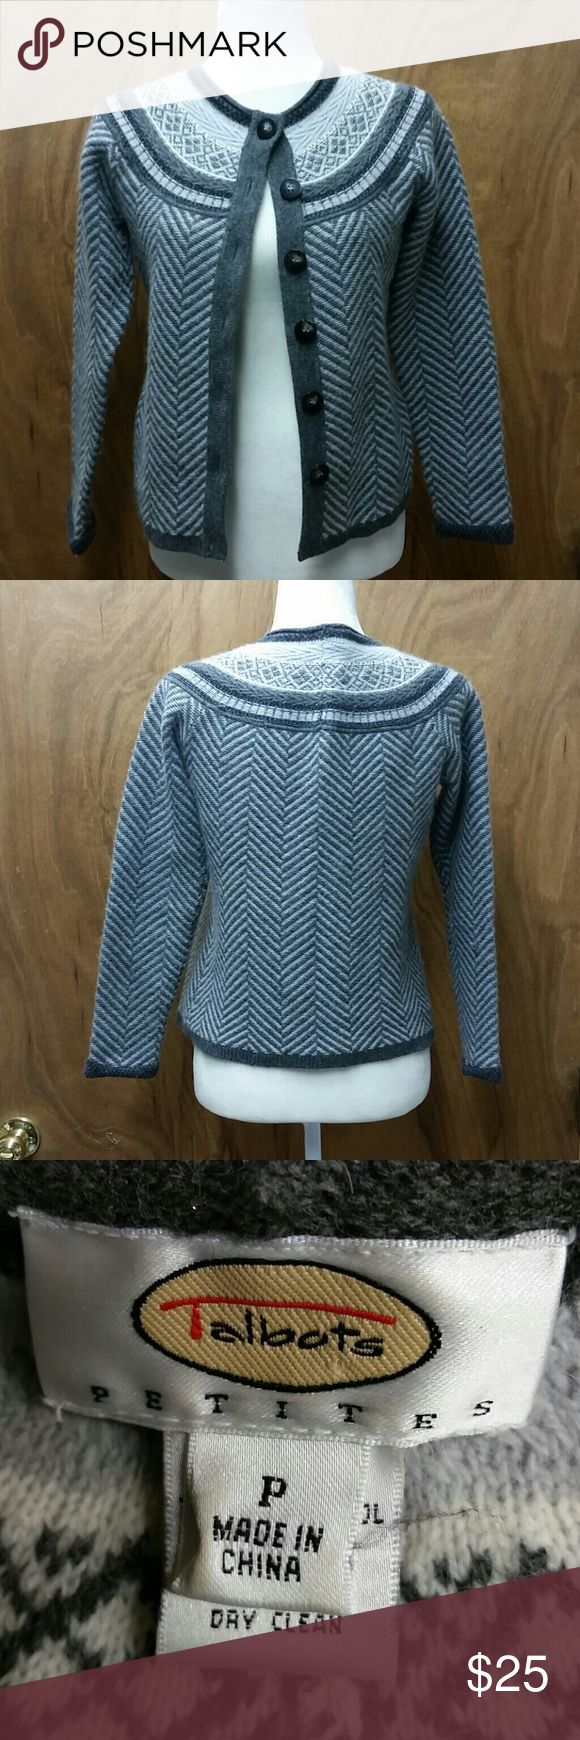 Talbots petites sweater size p Beautiful sweater in great condition Talbot's Petite size P Talbots Sweaters